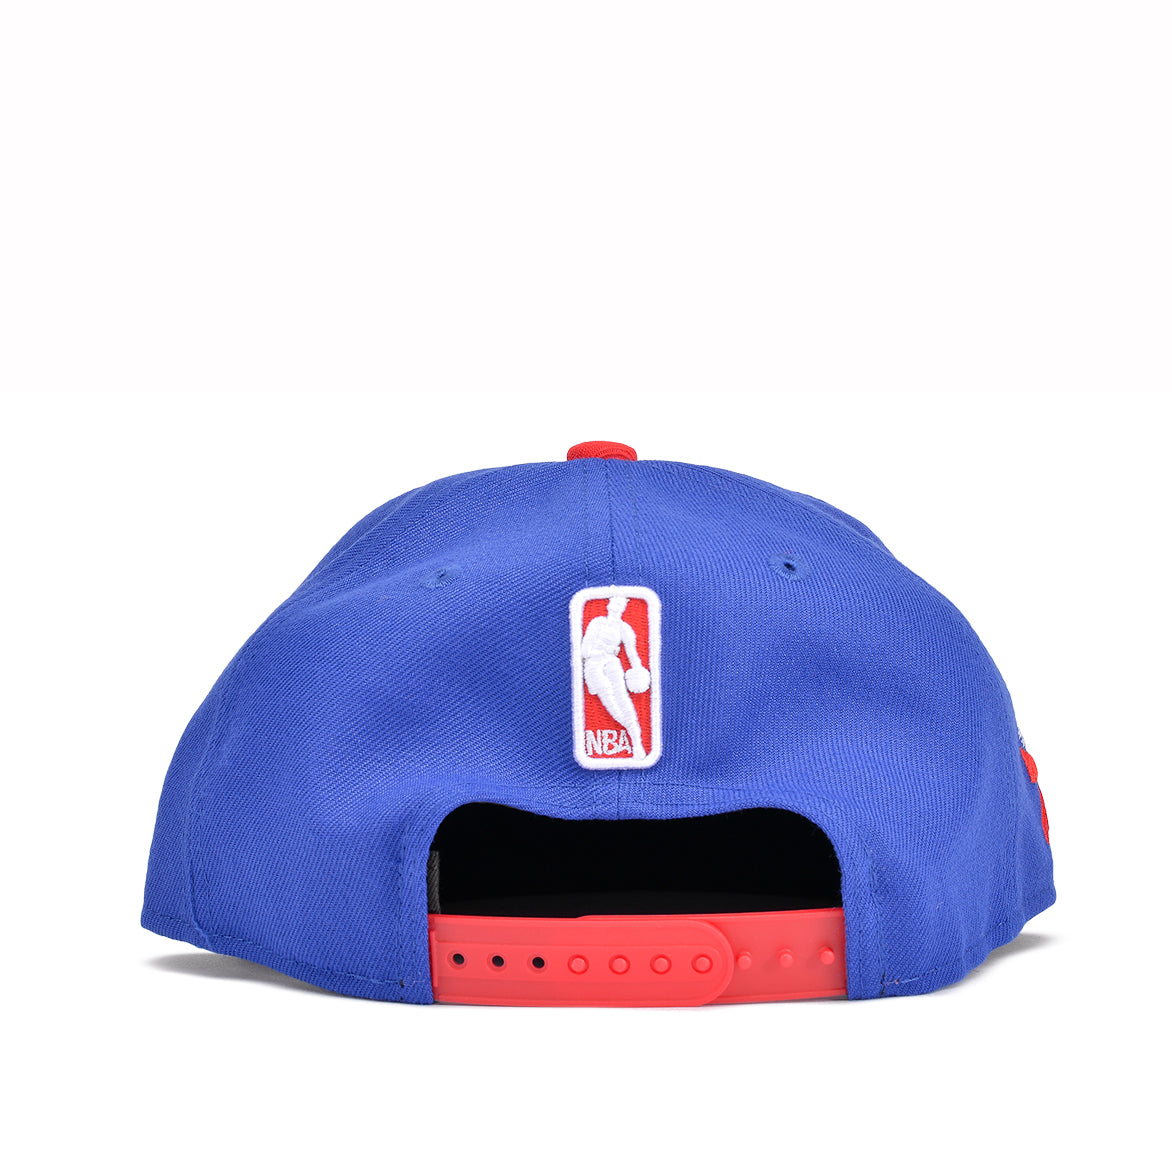 76ERS SCRIPTED TURN 9FIFTY SNAPBACK - BLUE / RED